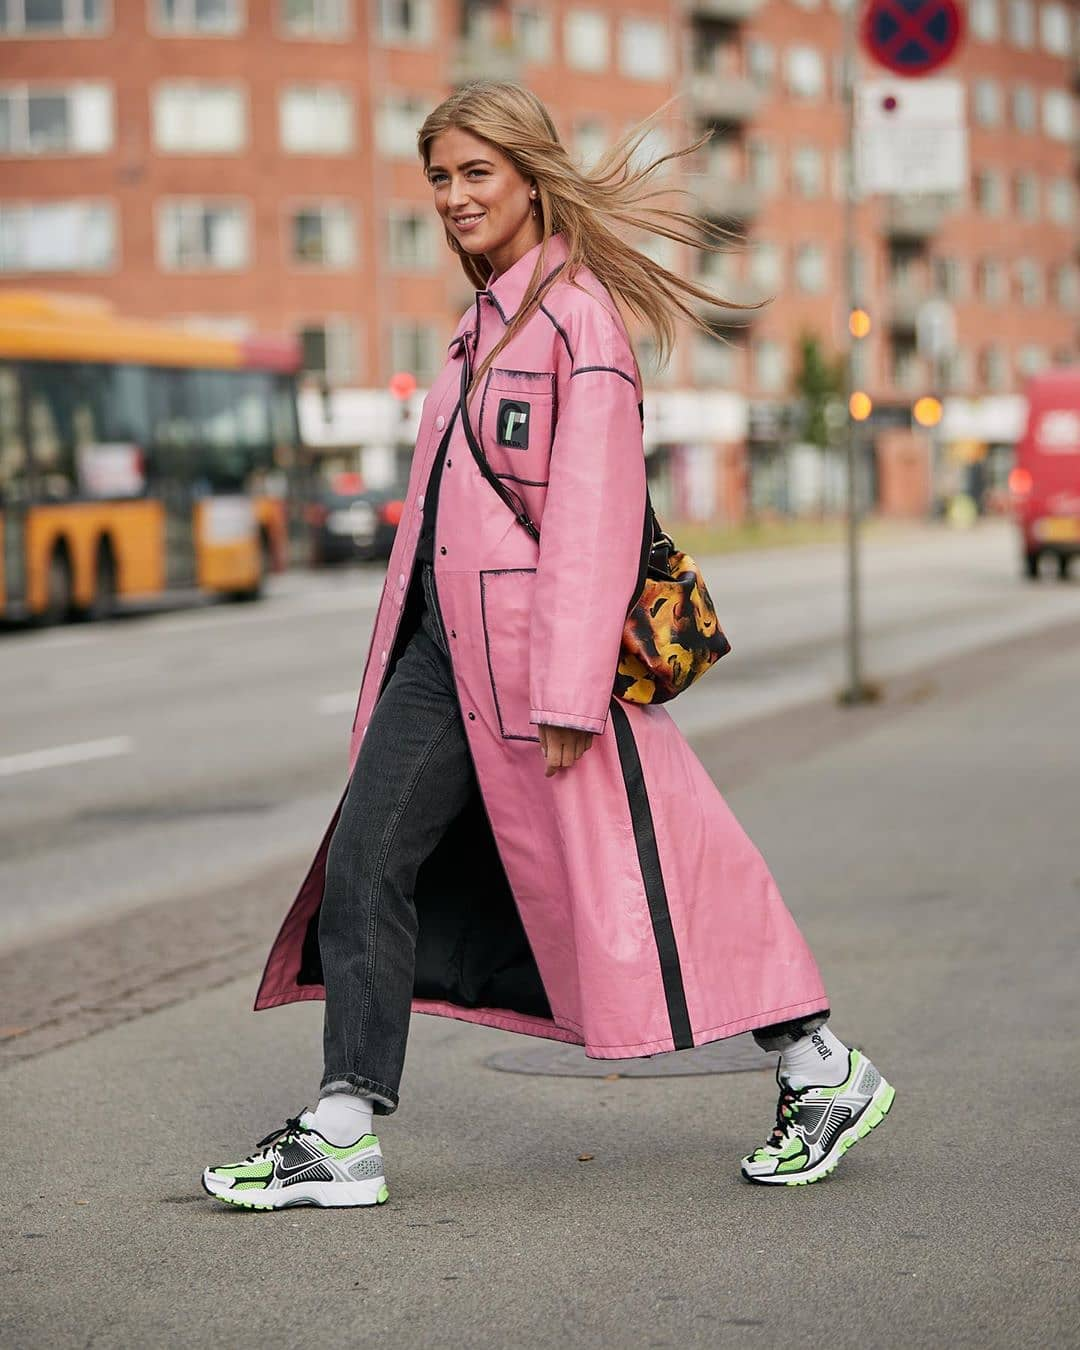 emili-sindlev-nike-zoom-vomero-sneakers-outfit-fall